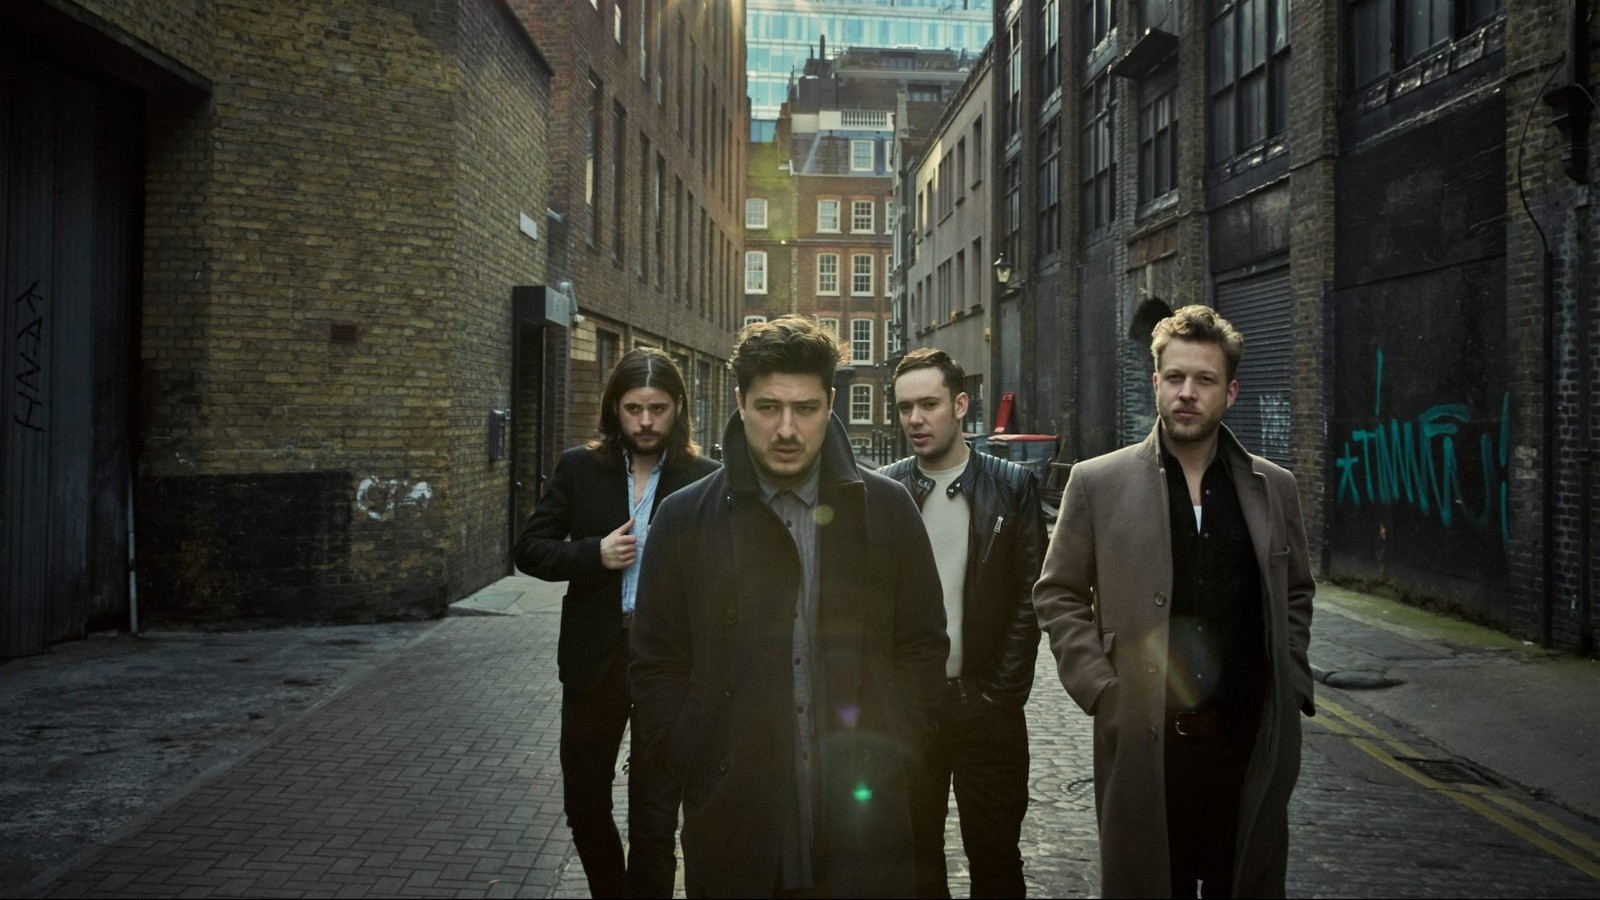 Mumford & Sons has released the new disc, 'Wilder Mind.'